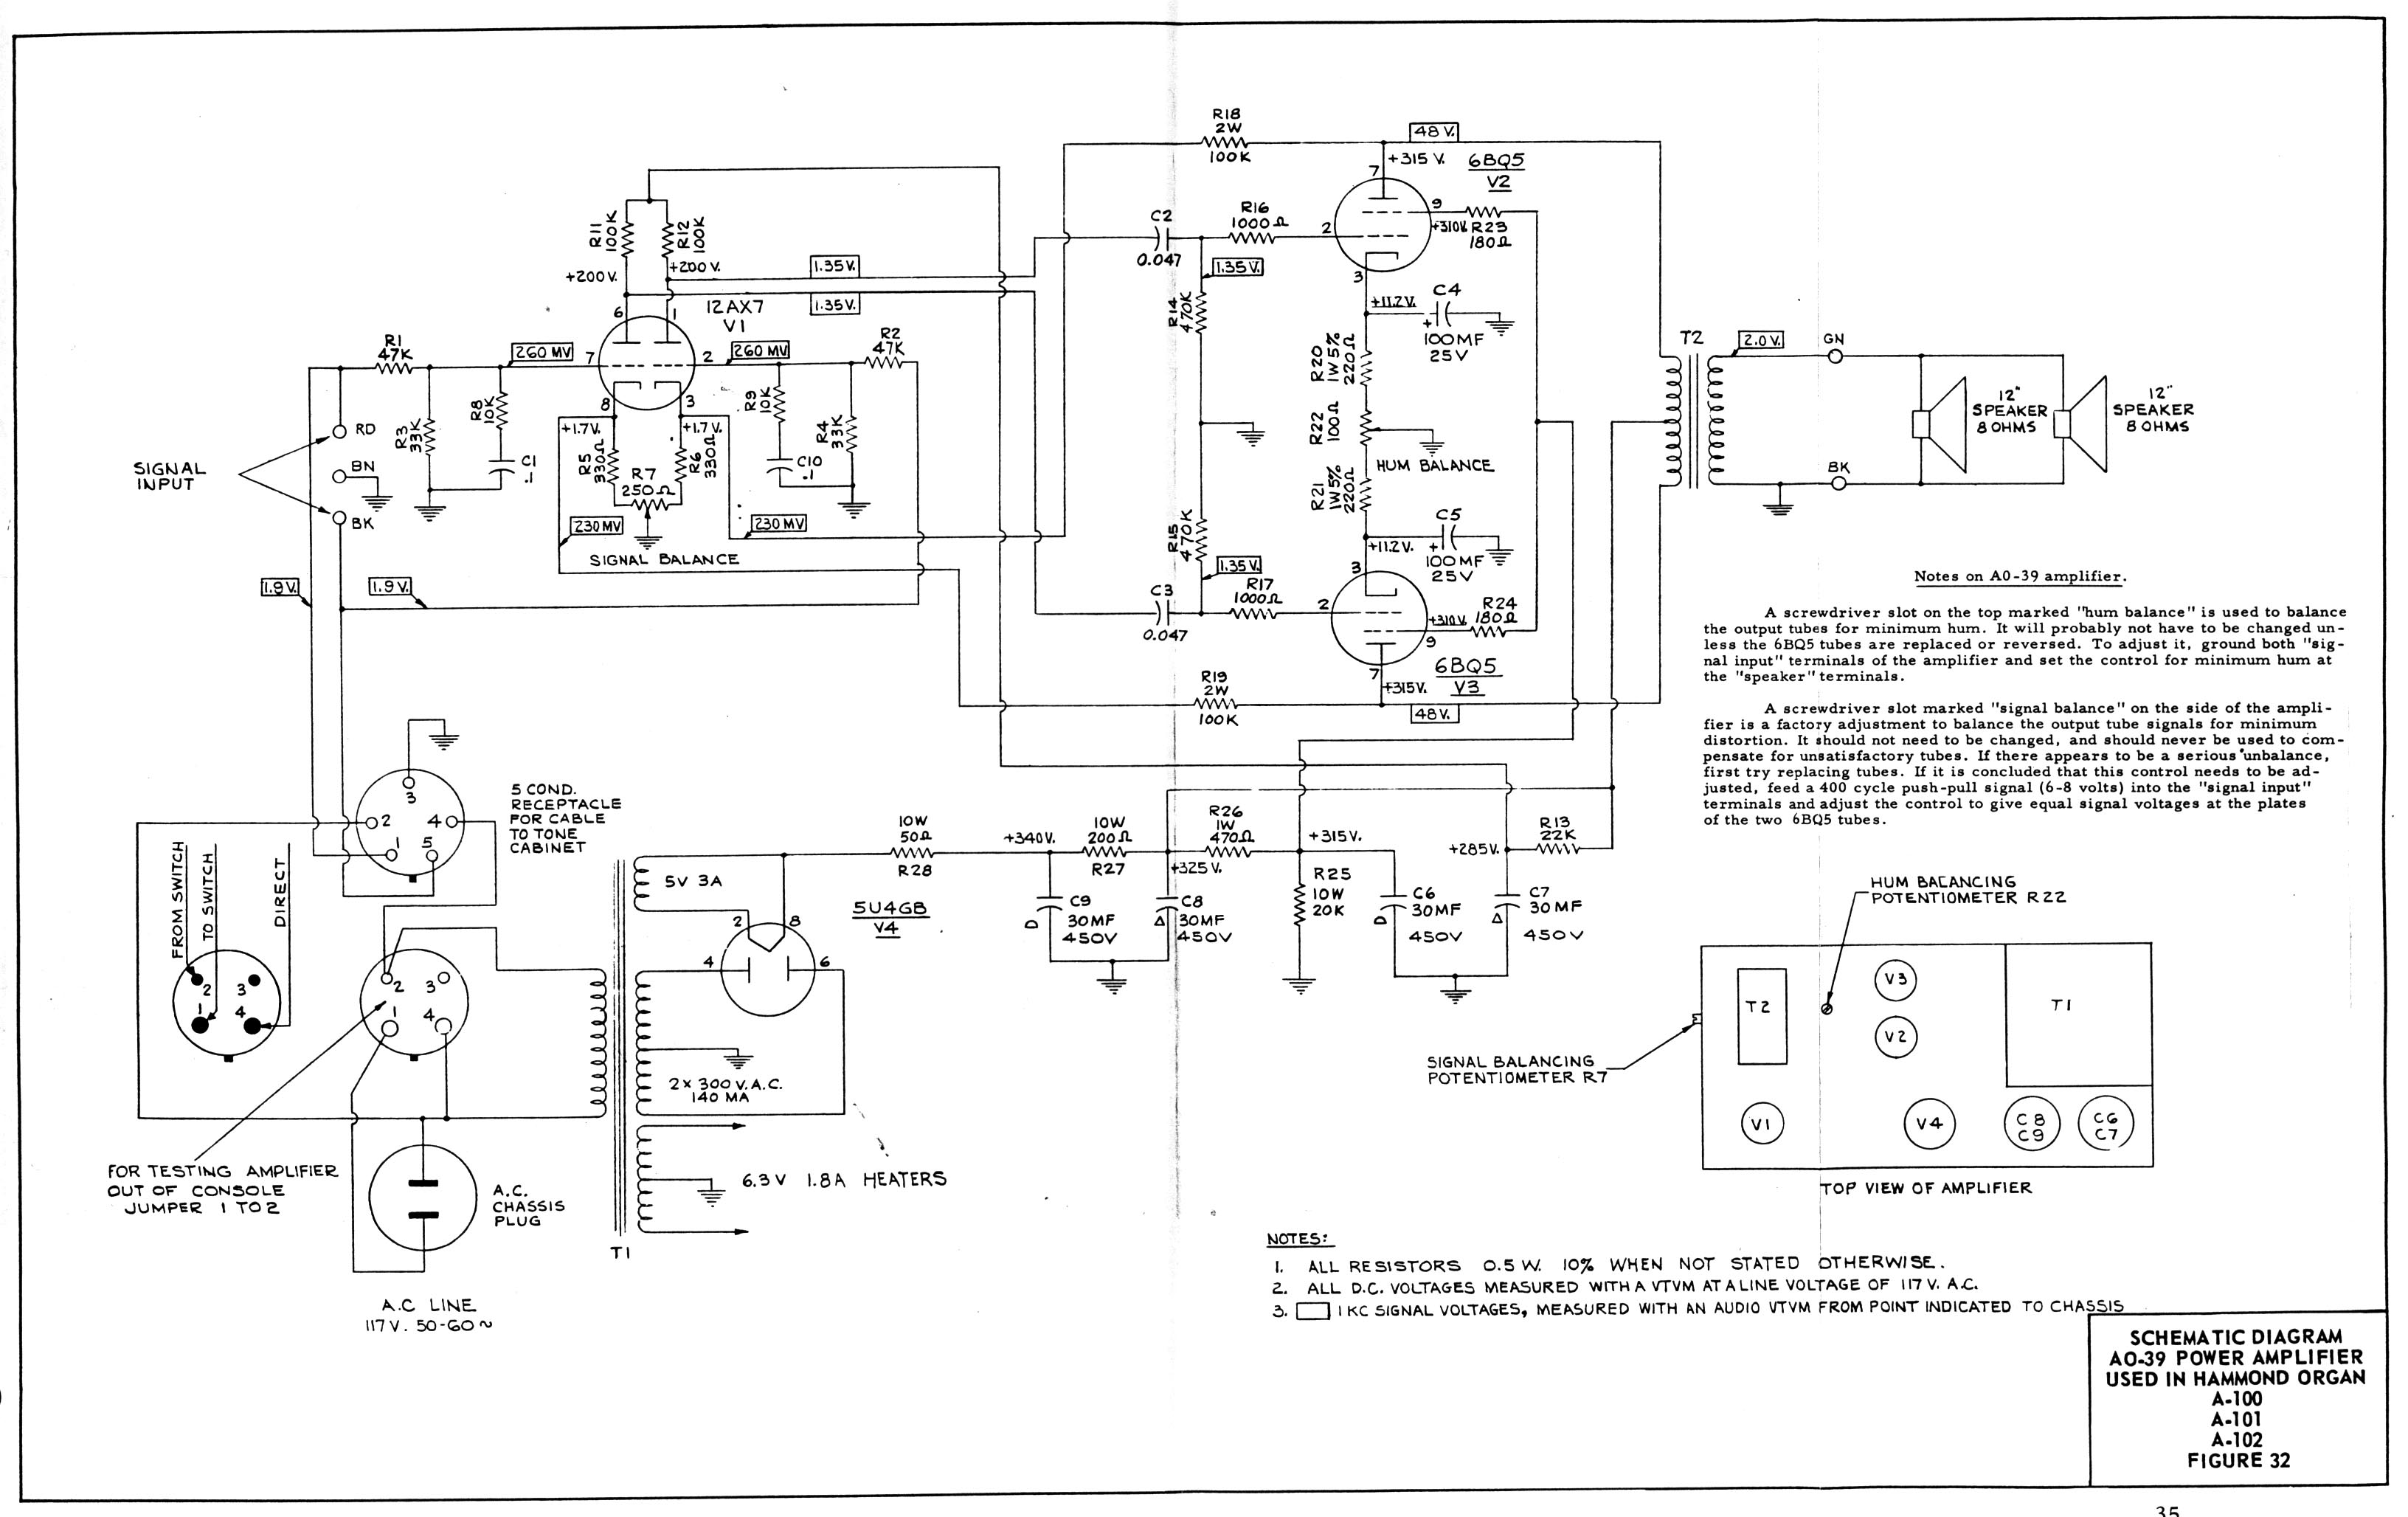 A 100 Service Manual 32 Amp Plug Wiring Diagram Schematic 3 Figure